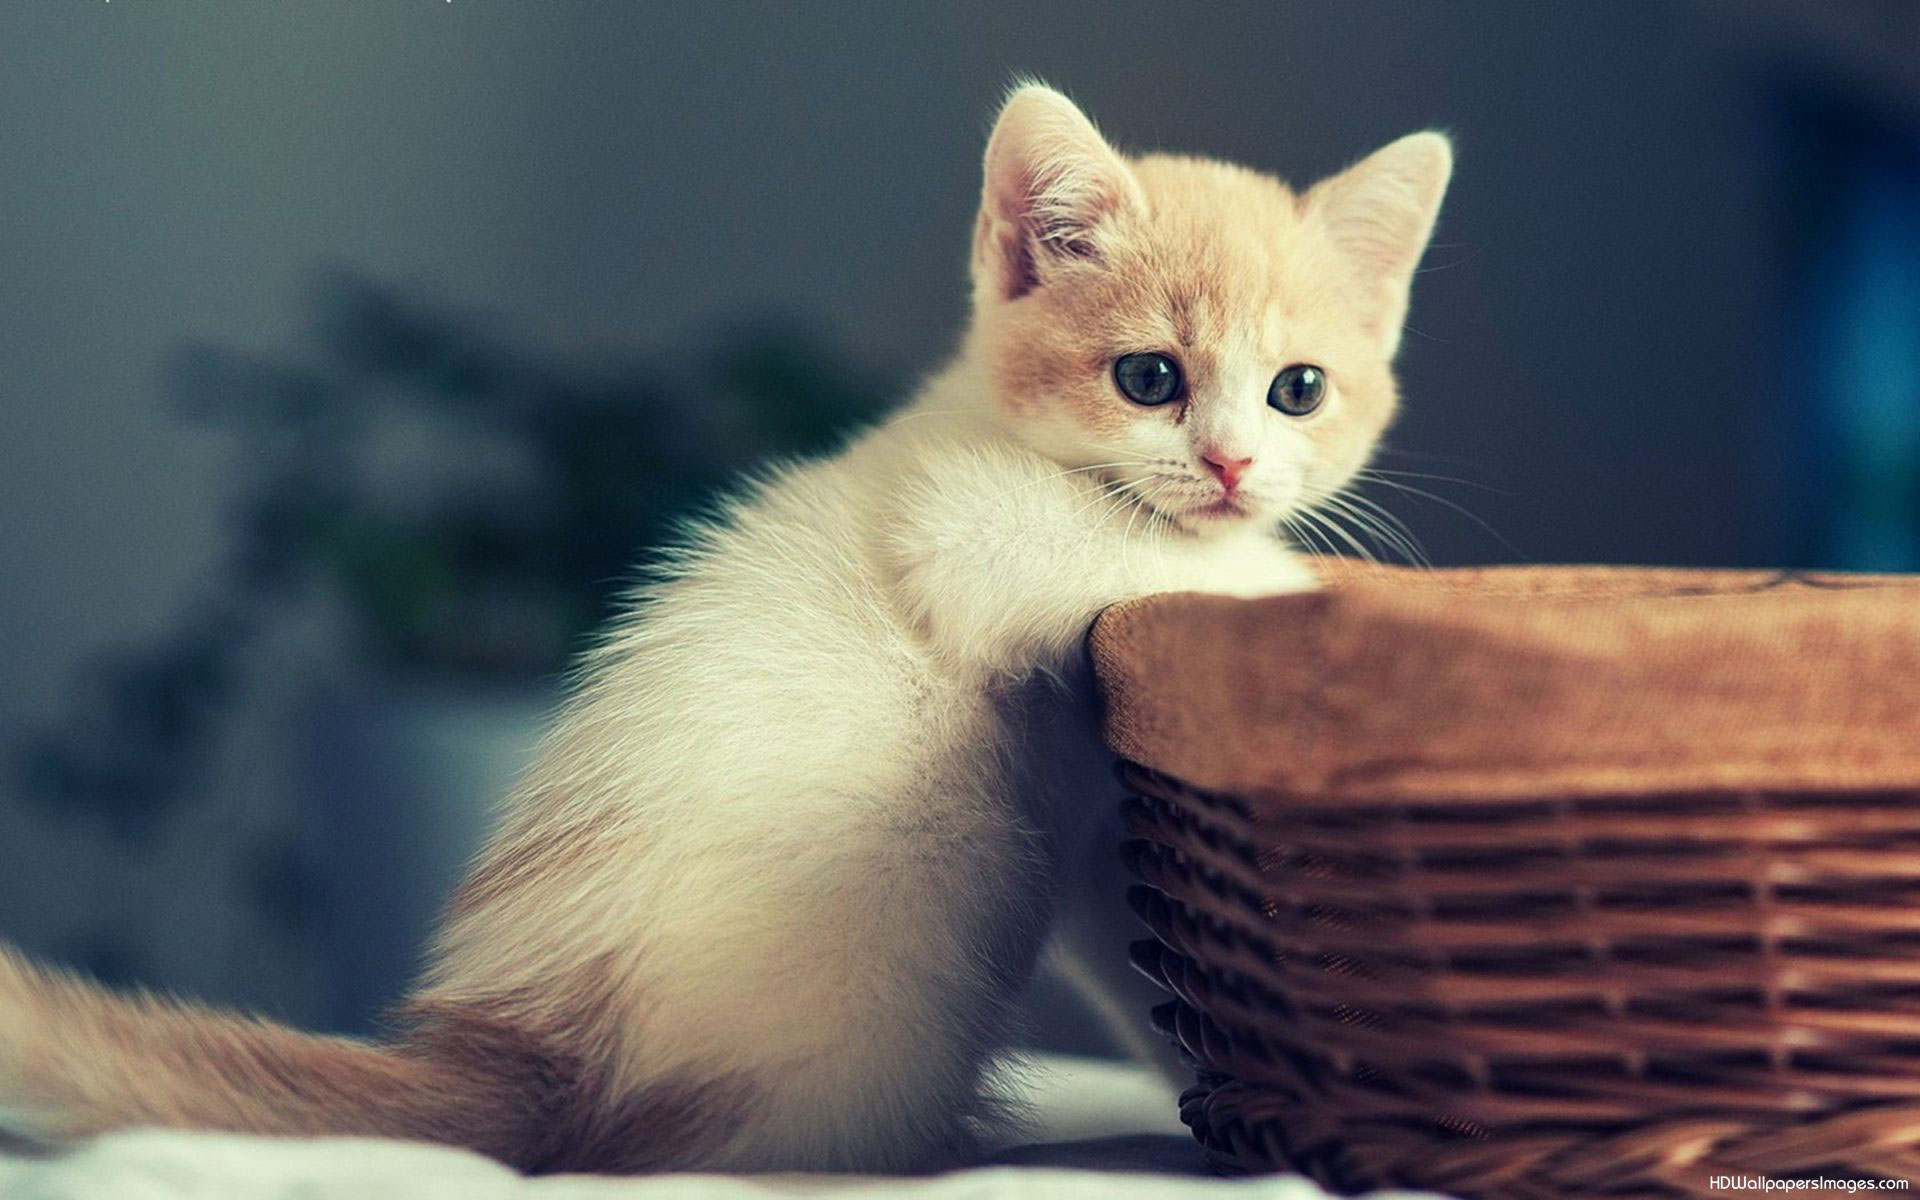 Hd Cat Wallpapers For Android 29 Dzbc Org